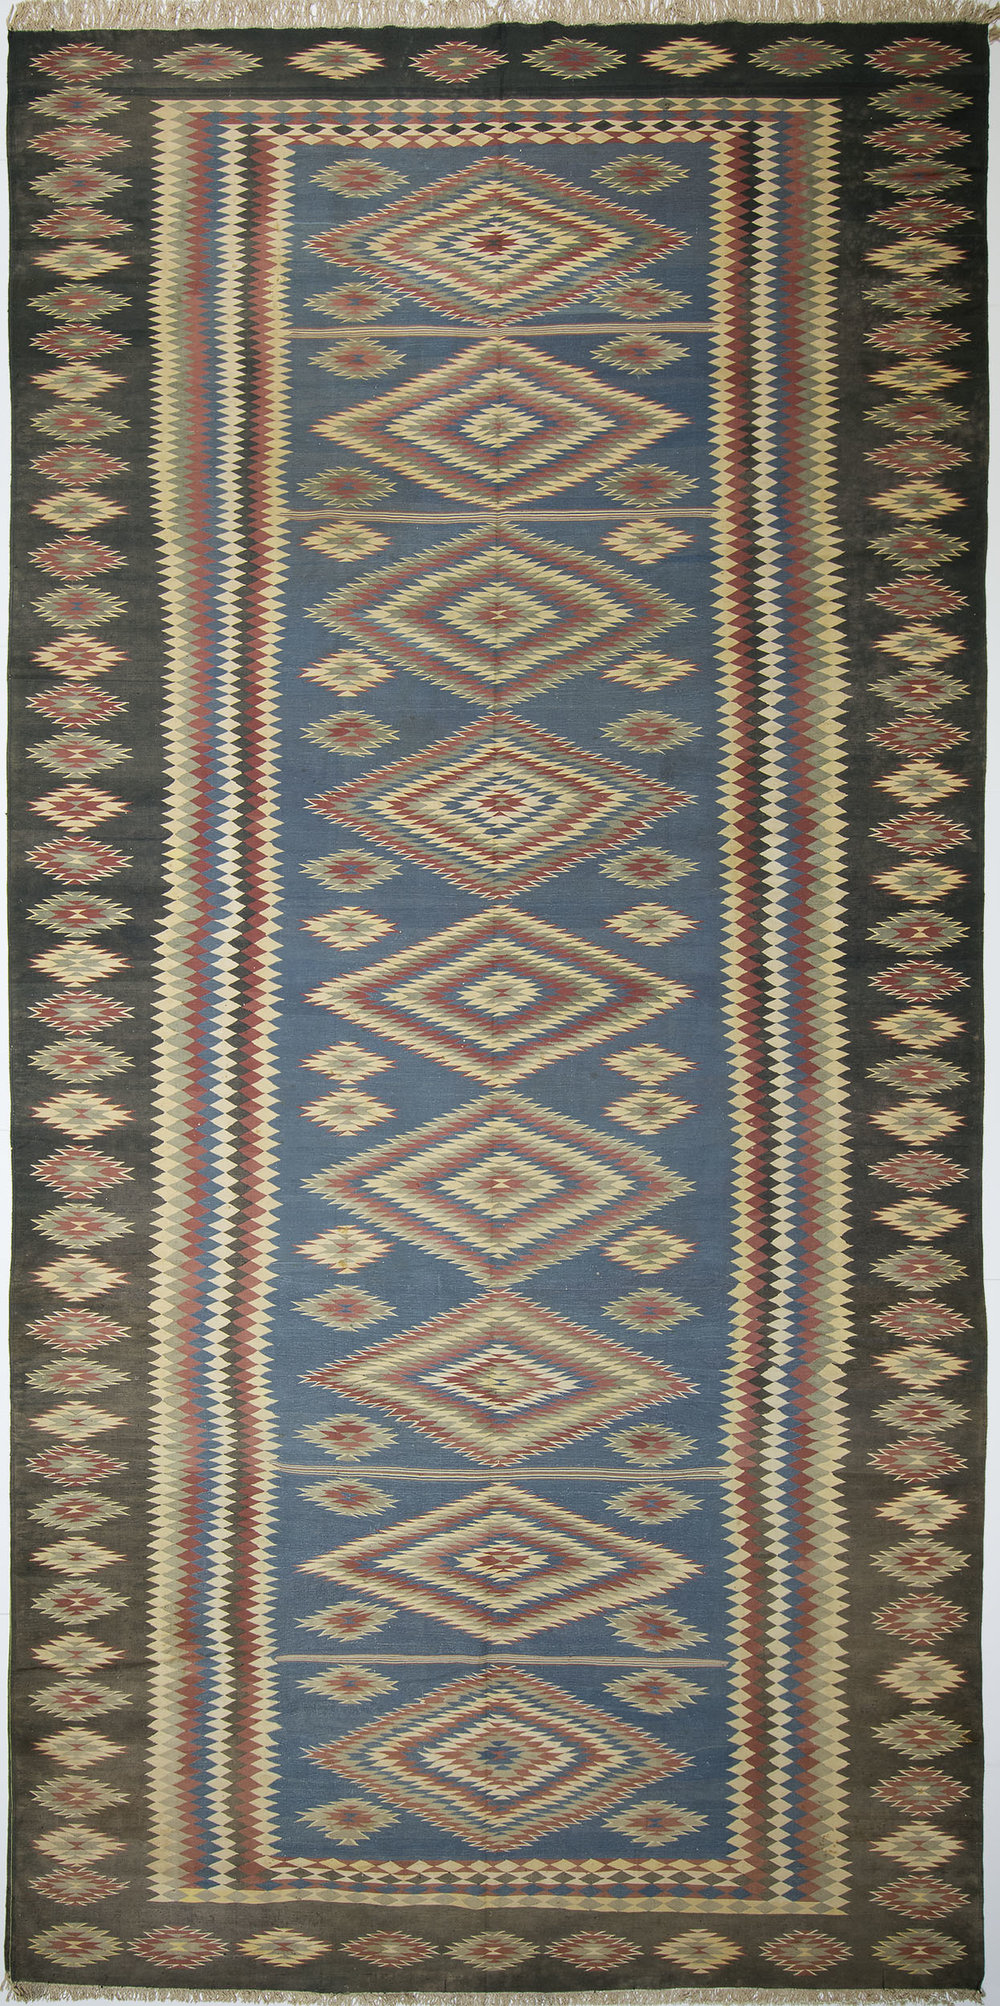 "Cotton Dhurrie 20' 4"" x 10' 0"""